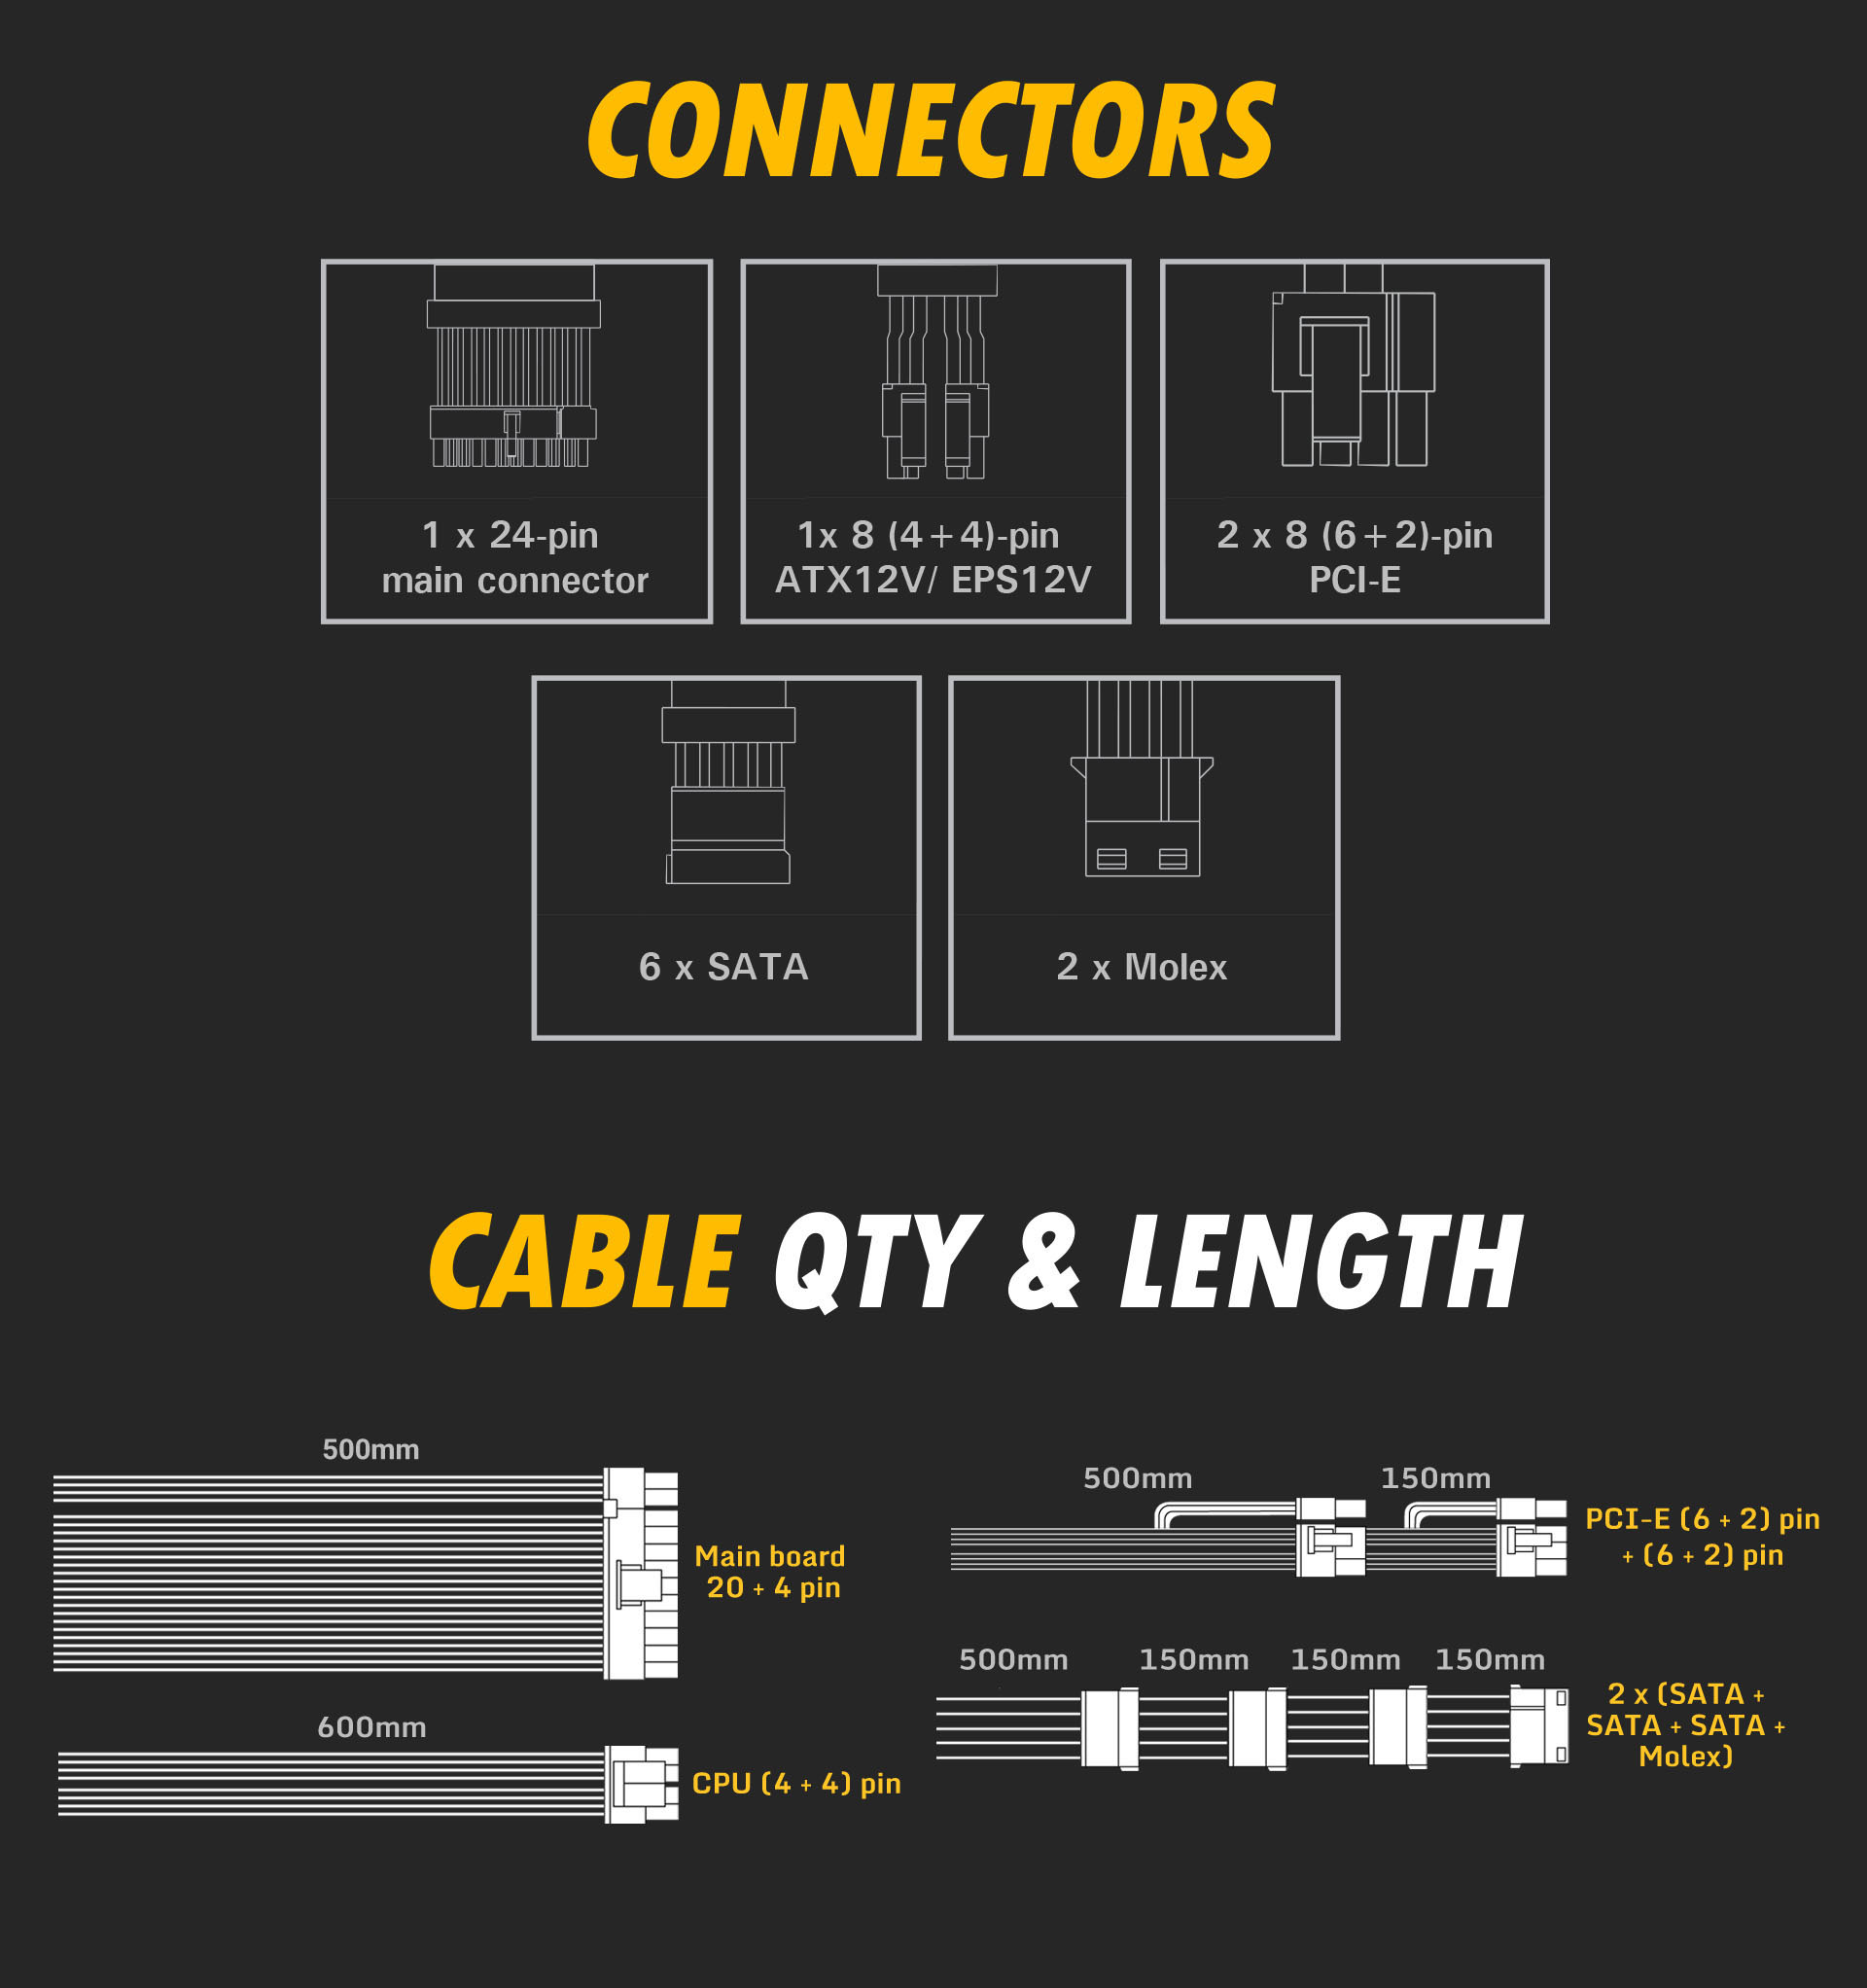 Antec NeoECO Gold ZEN Series NE500G ZEN Power Supply connectors list and Cable QTY & lENGTH graph